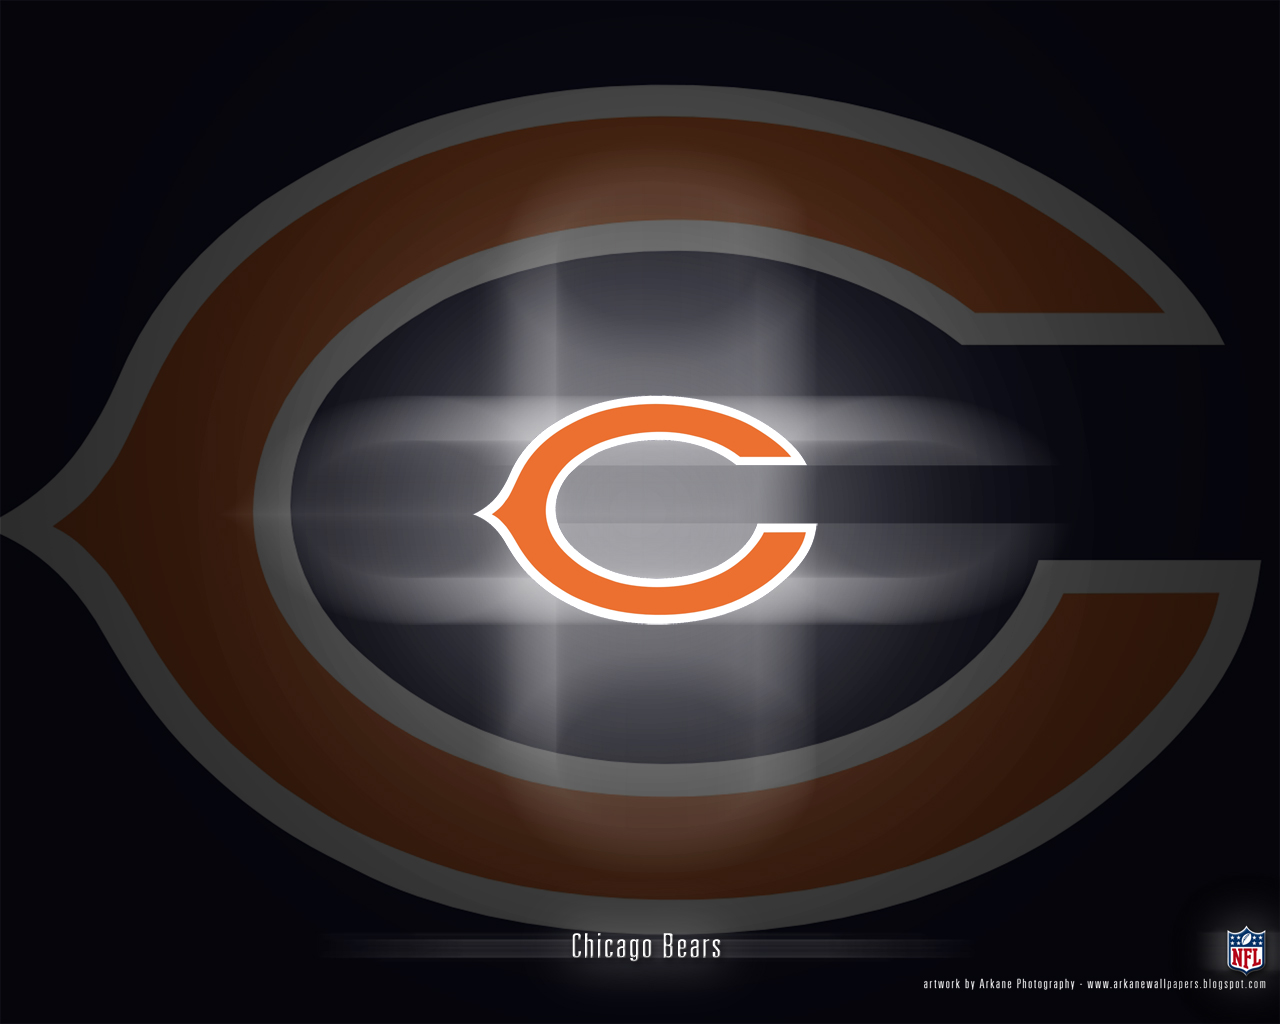 Arkane NFL Wallpapers Chicago Bears   Vol 1 1280x1024